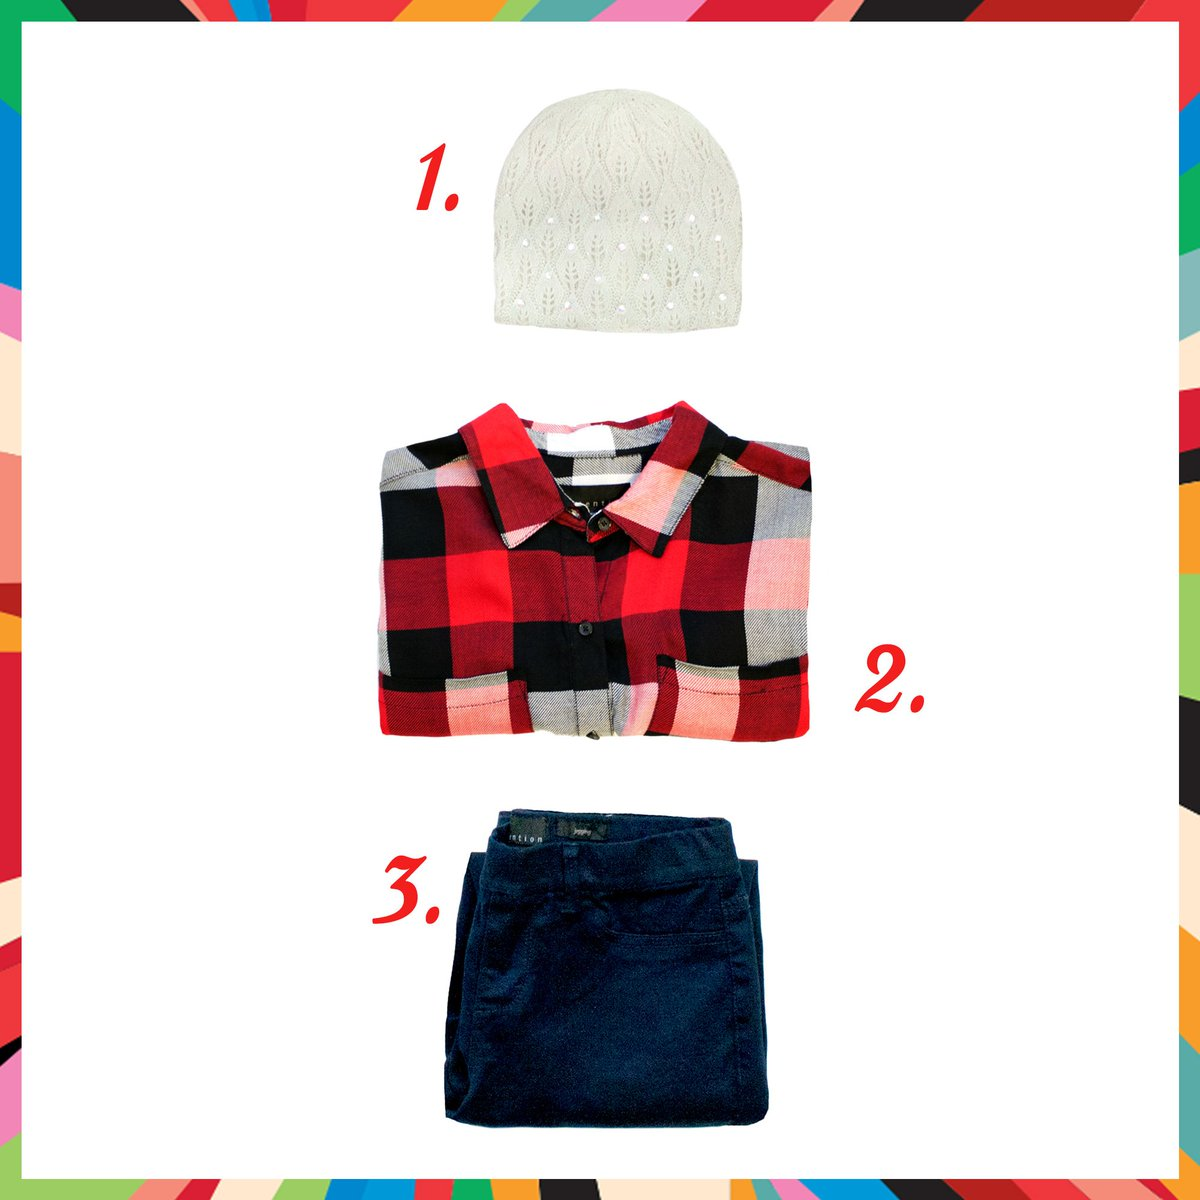 Stock up on these 3 winter pieces, all under $30. Learn more on our blog! https://t.co/FnEVQXbUY2 https://t.co/72b7Z90NAm